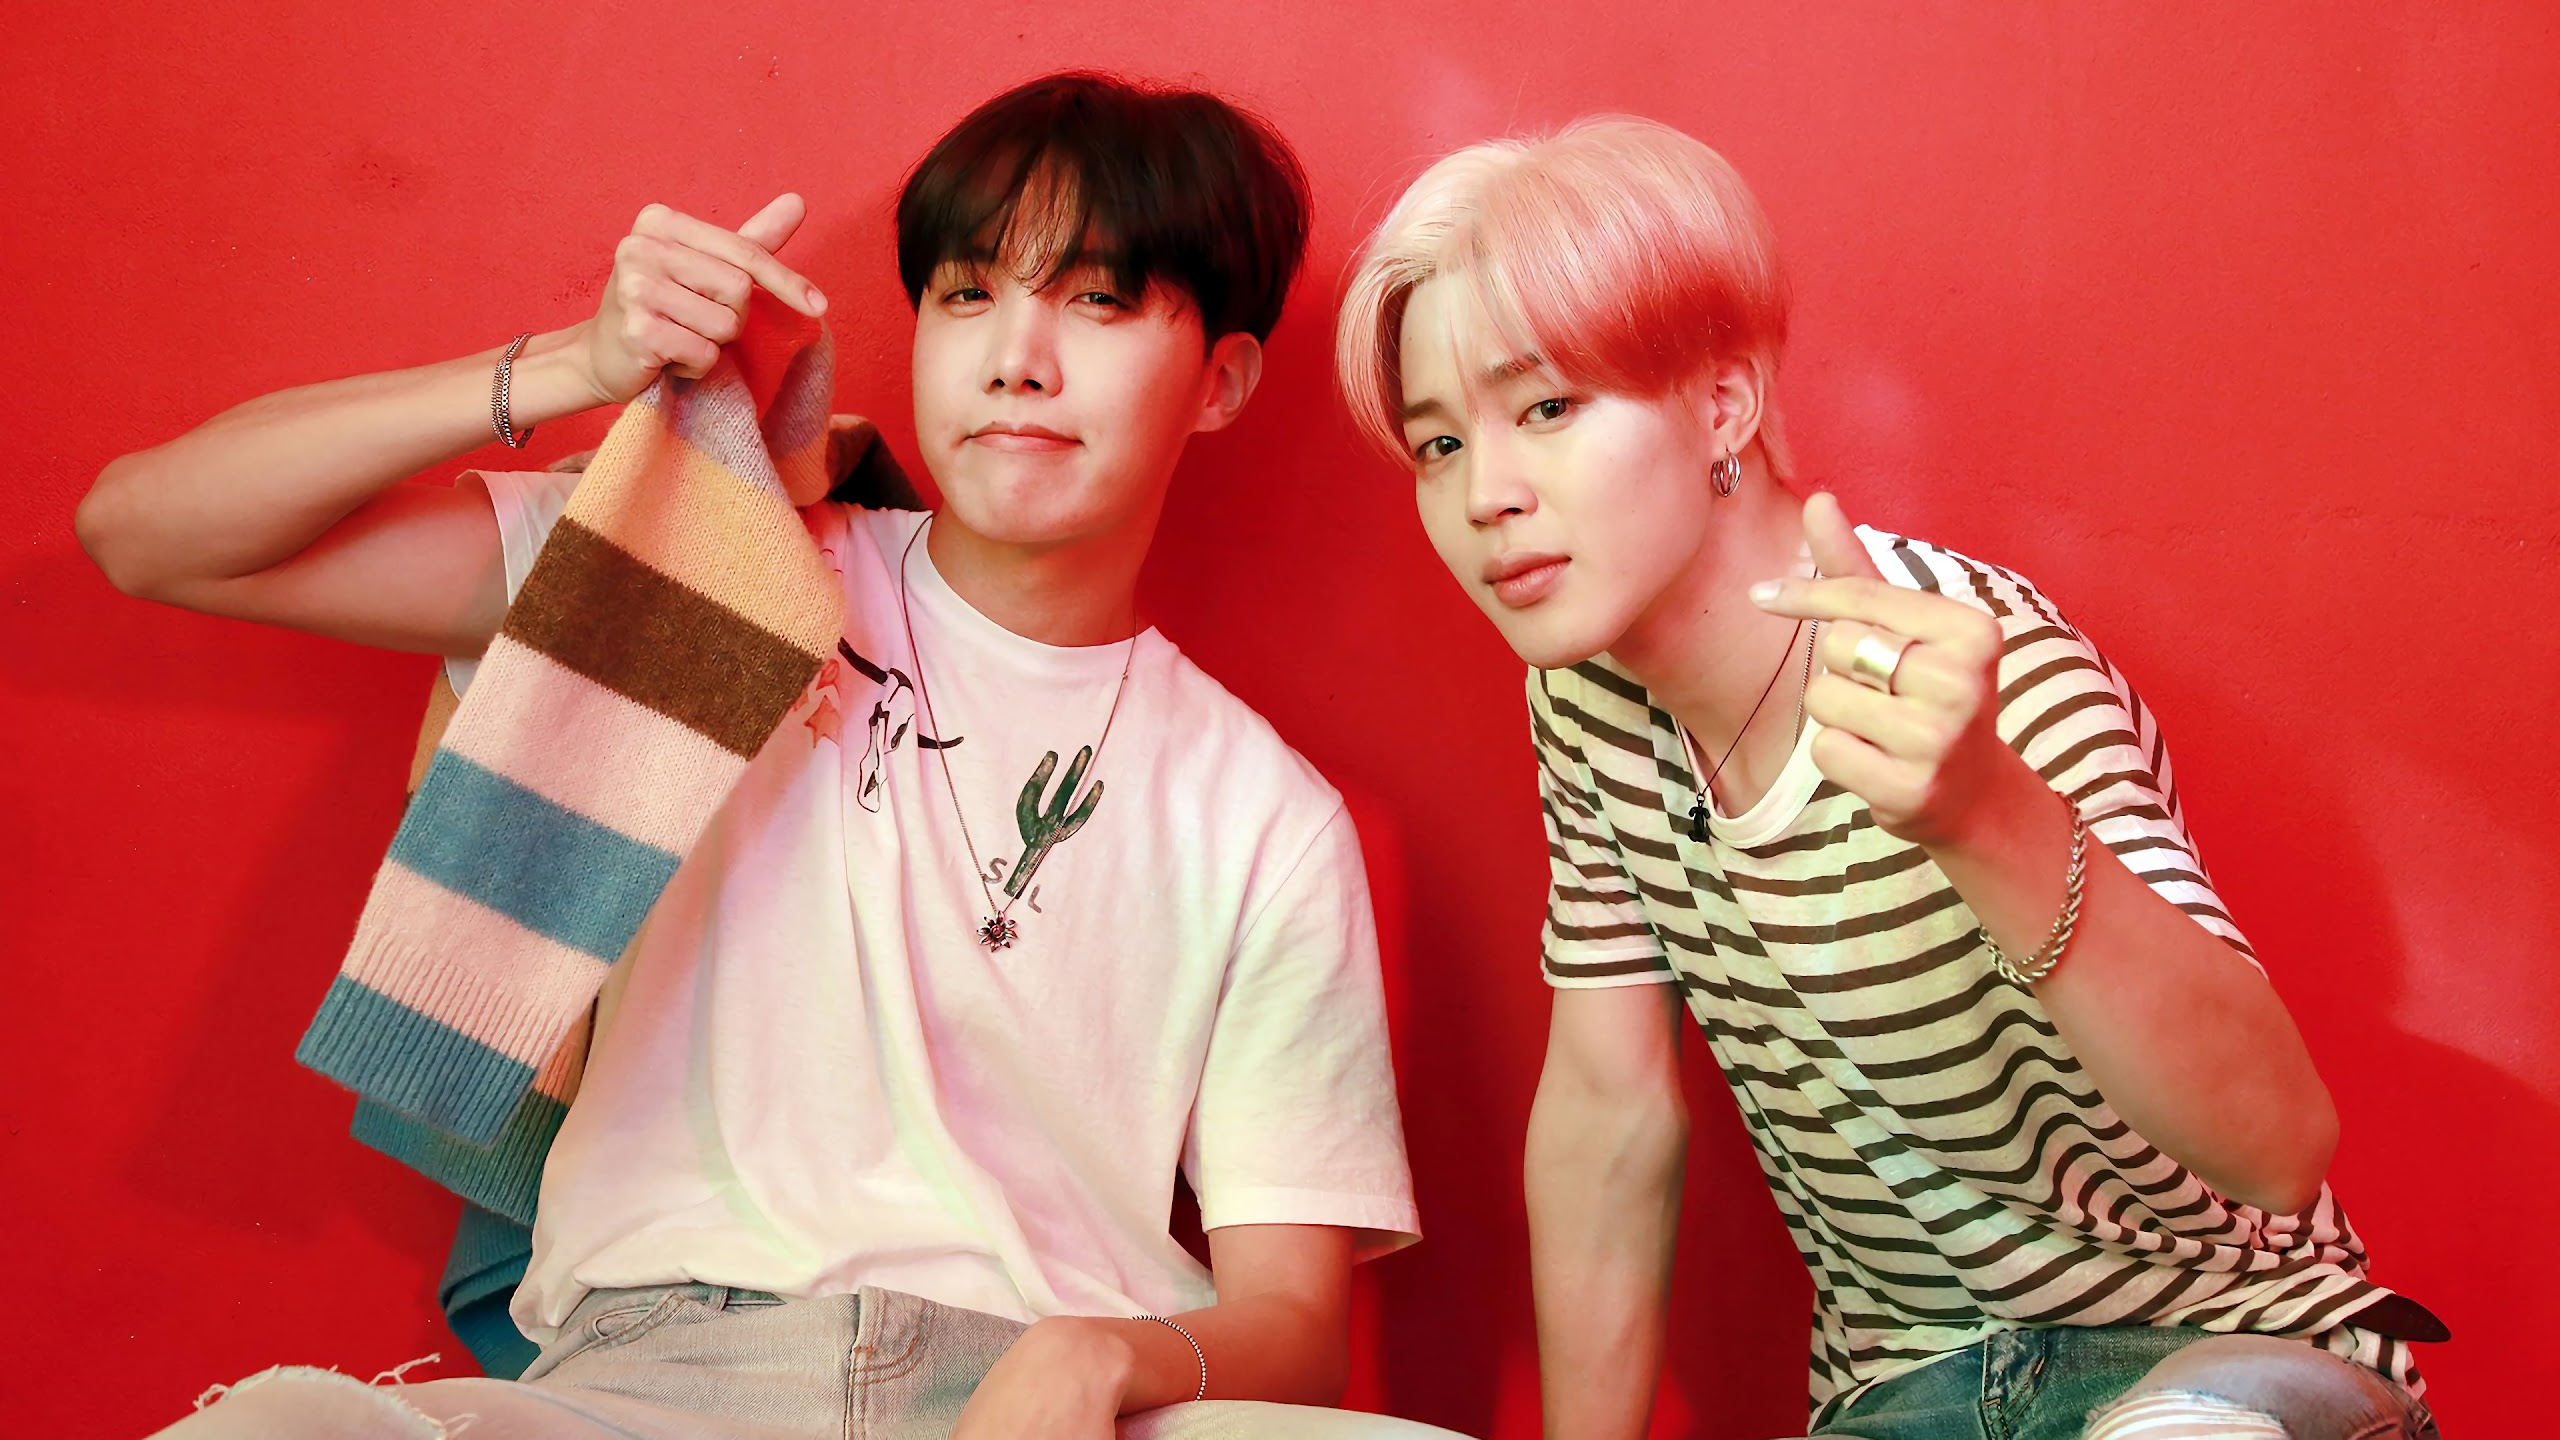 j hope jimin bts map of the soul persona uhdpaper.com 4K 37